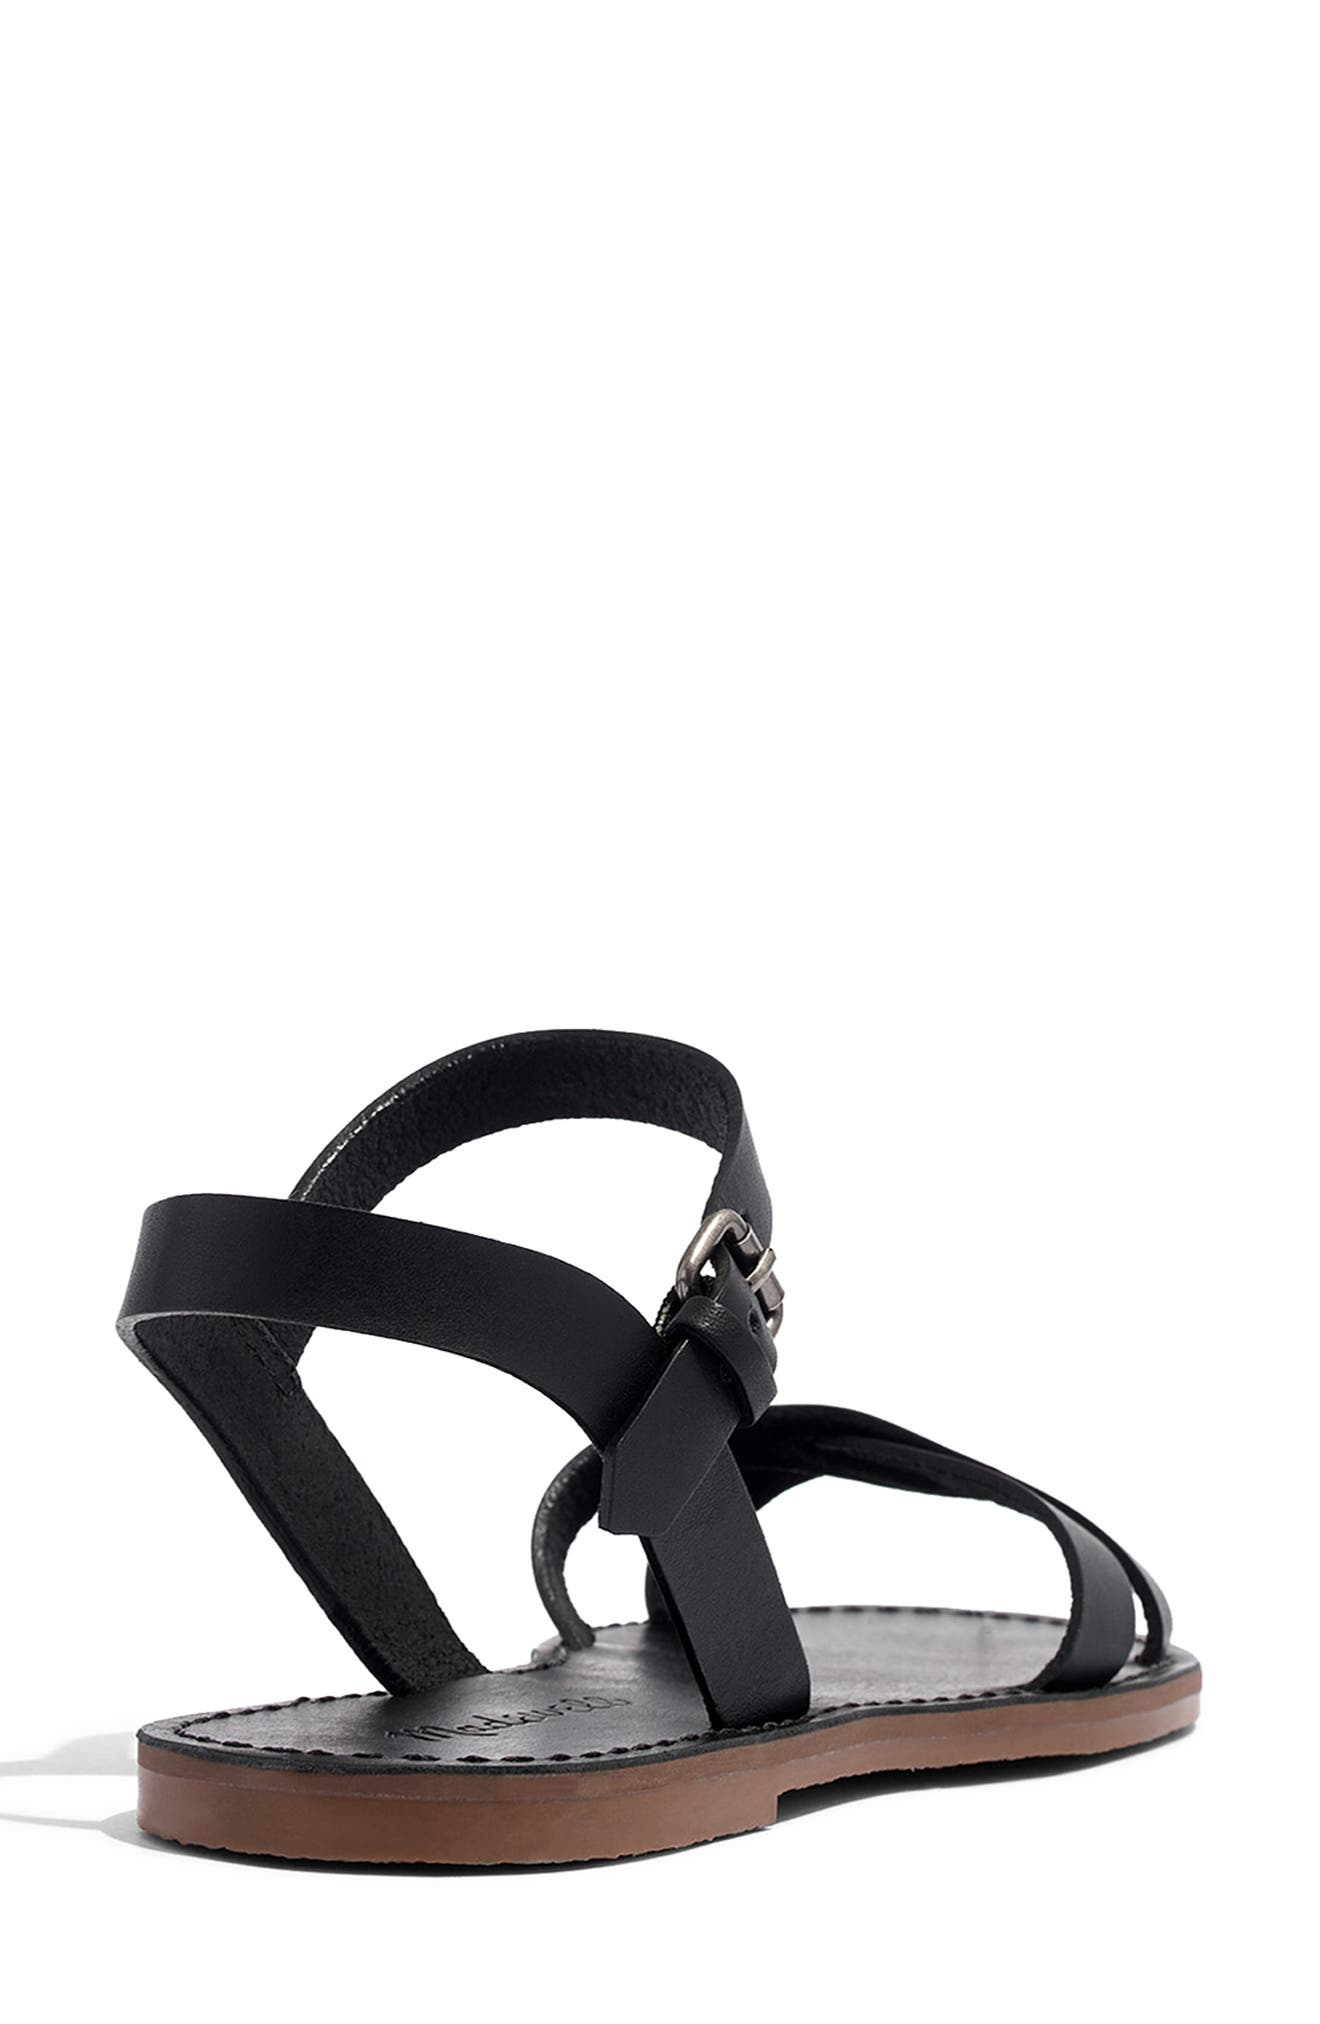 Boardwalk Quarter Strap Sandal,                             Alternate thumbnail 8, color,                             TRUE BLACK LEATHER